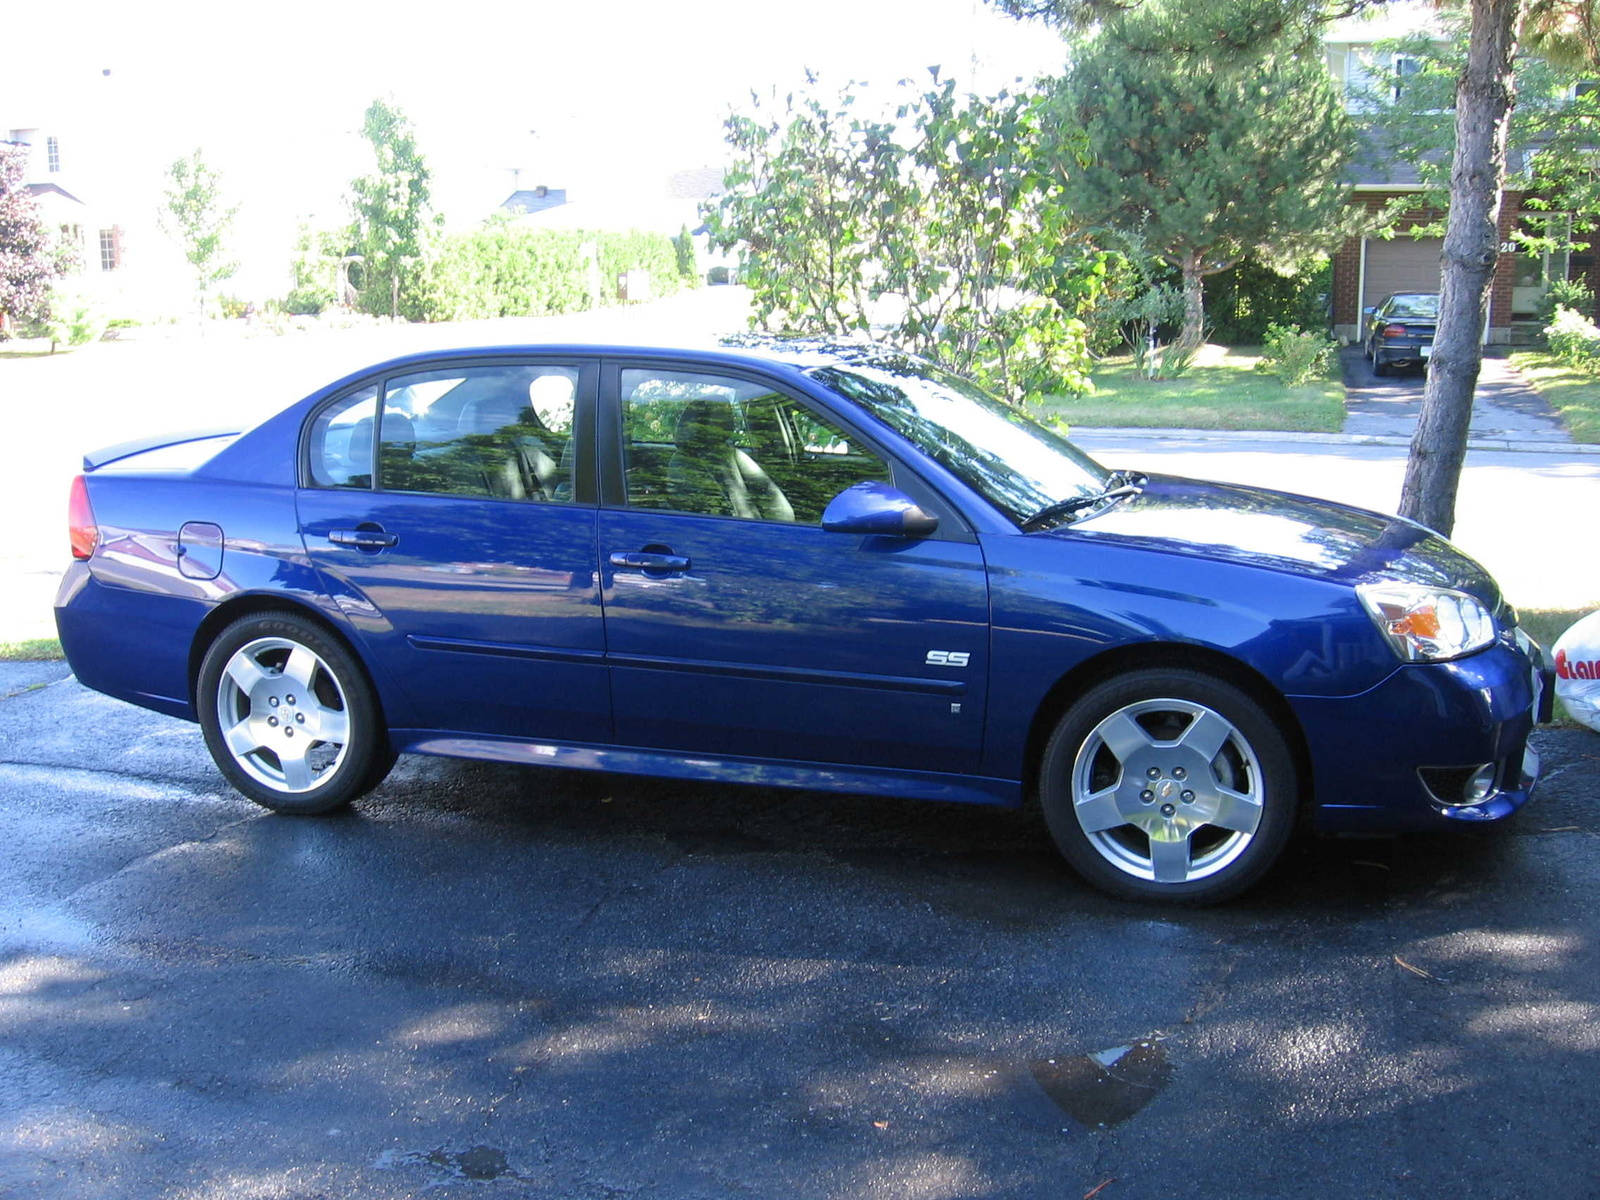 2006 Chevrolet Malibu Maxx SS related infomation,specifications ...